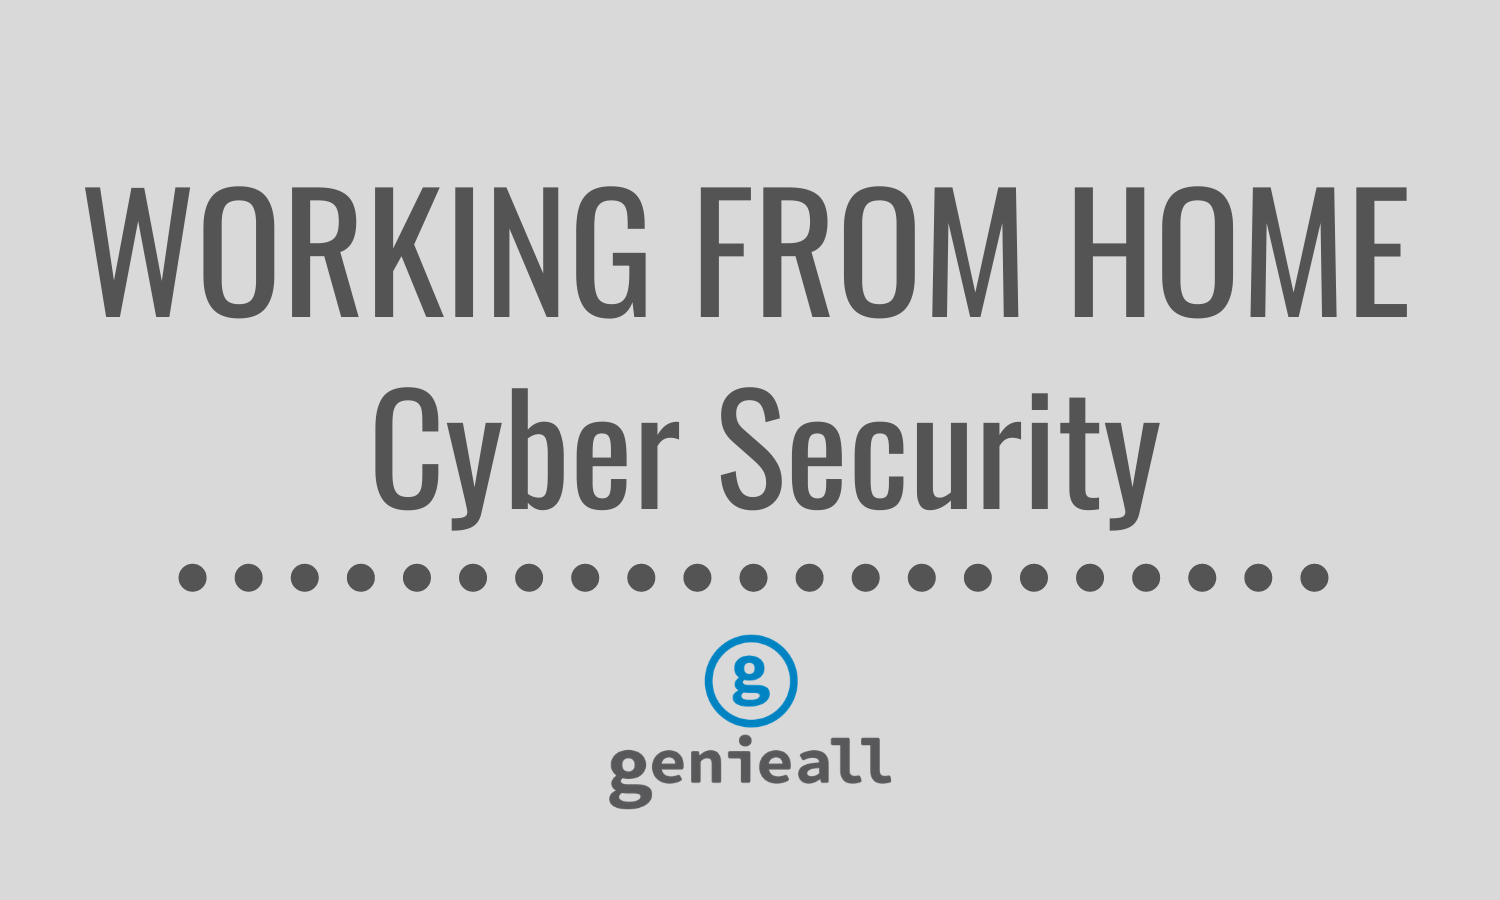 working from home cyber security